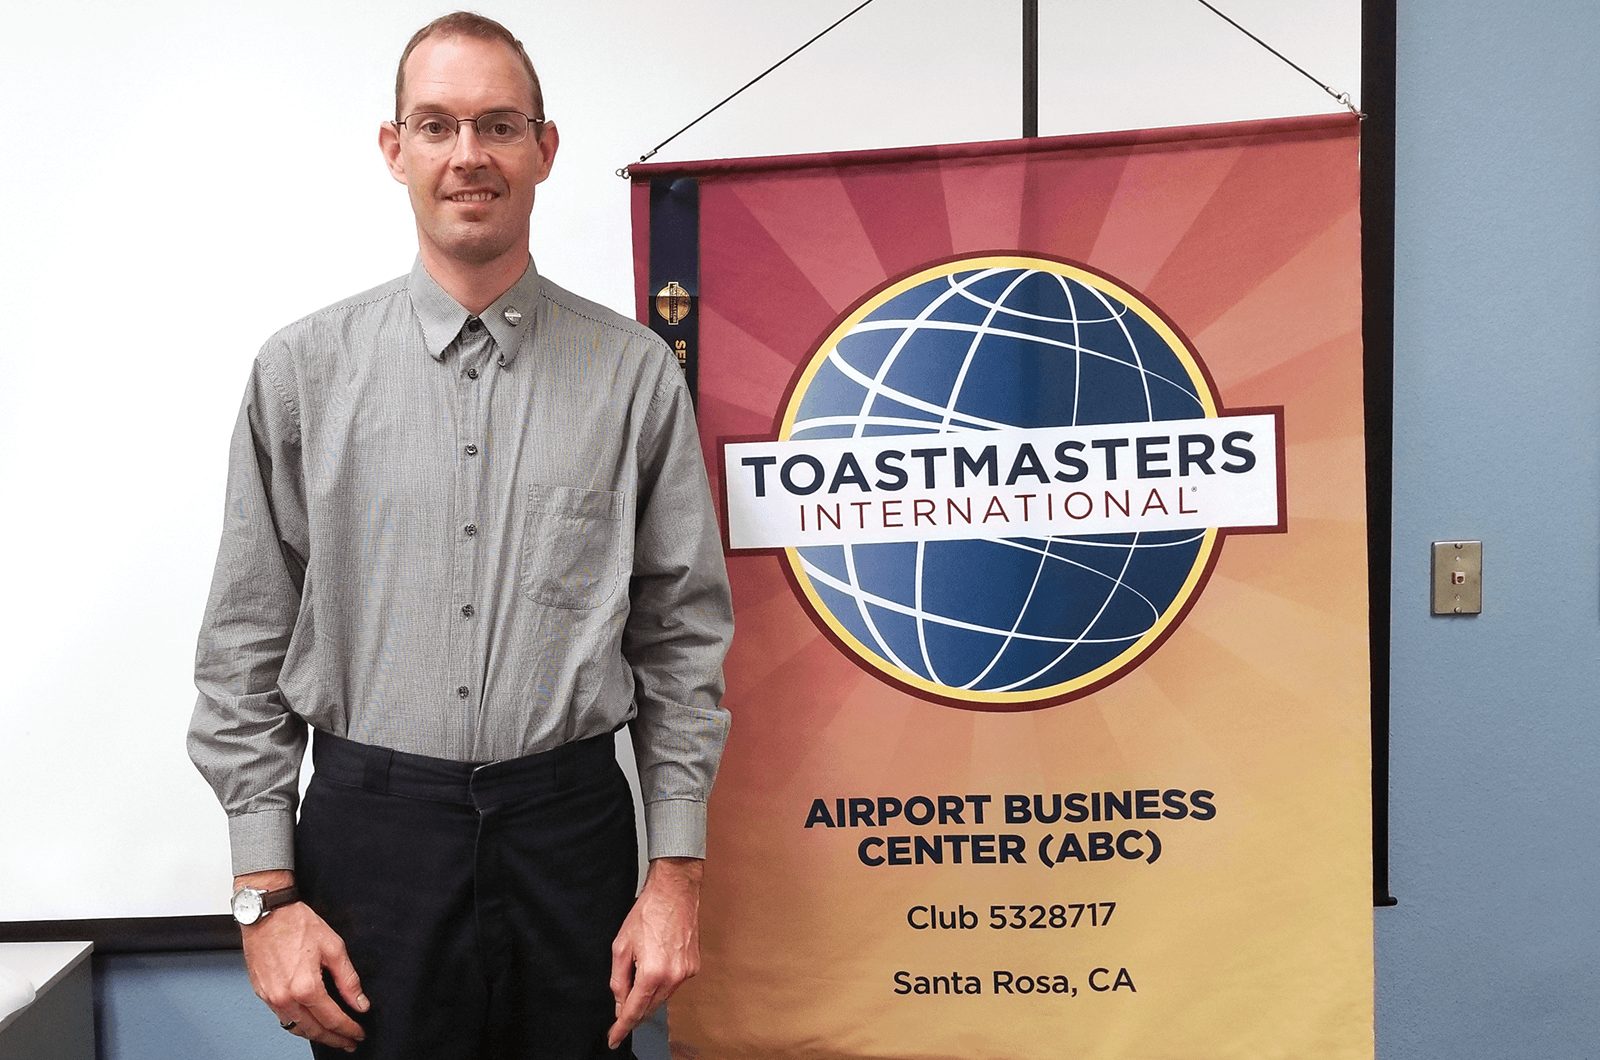 Toastmaster member standing next to club banner